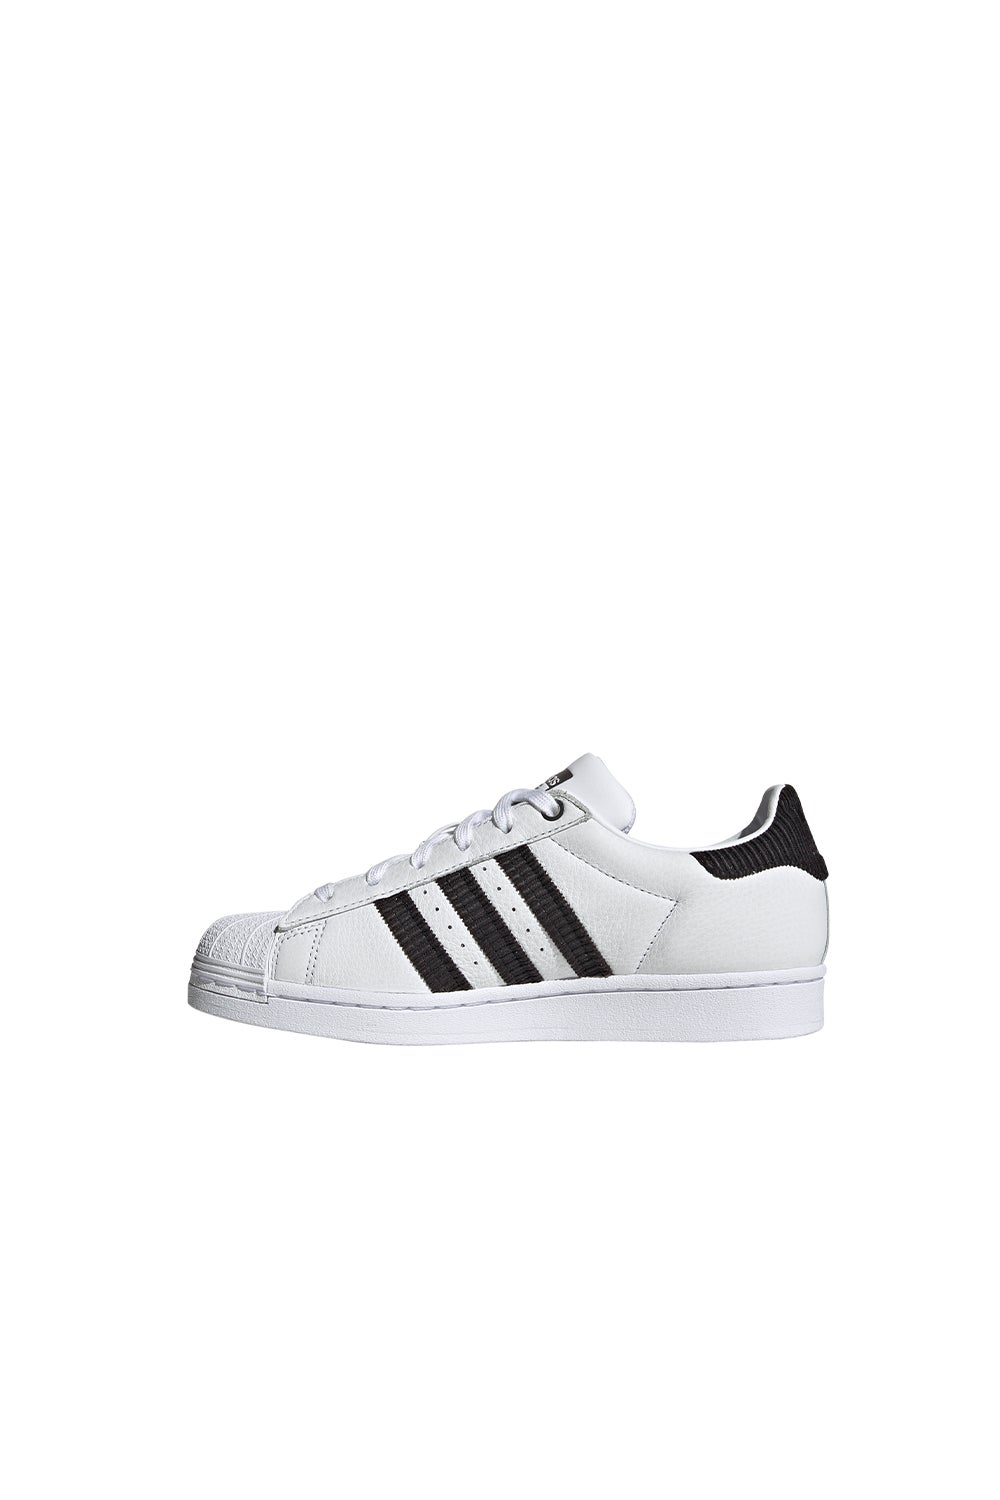 adidas Superstar W Utility Black